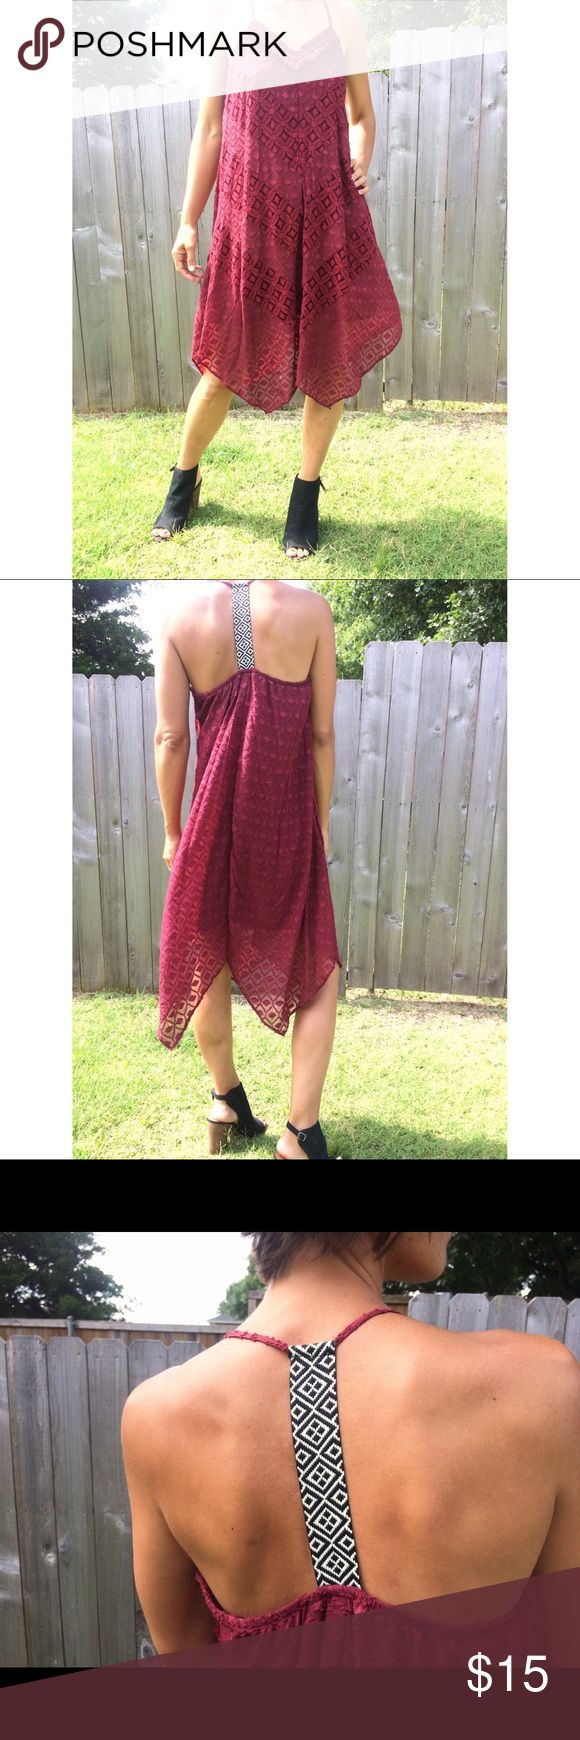 Red Xhilaration racerback maxi dress Medium Red Xhilaration racerback maxi dress Medium, perfect for summer and very comfortable. Xhilaration Dresses Maxi